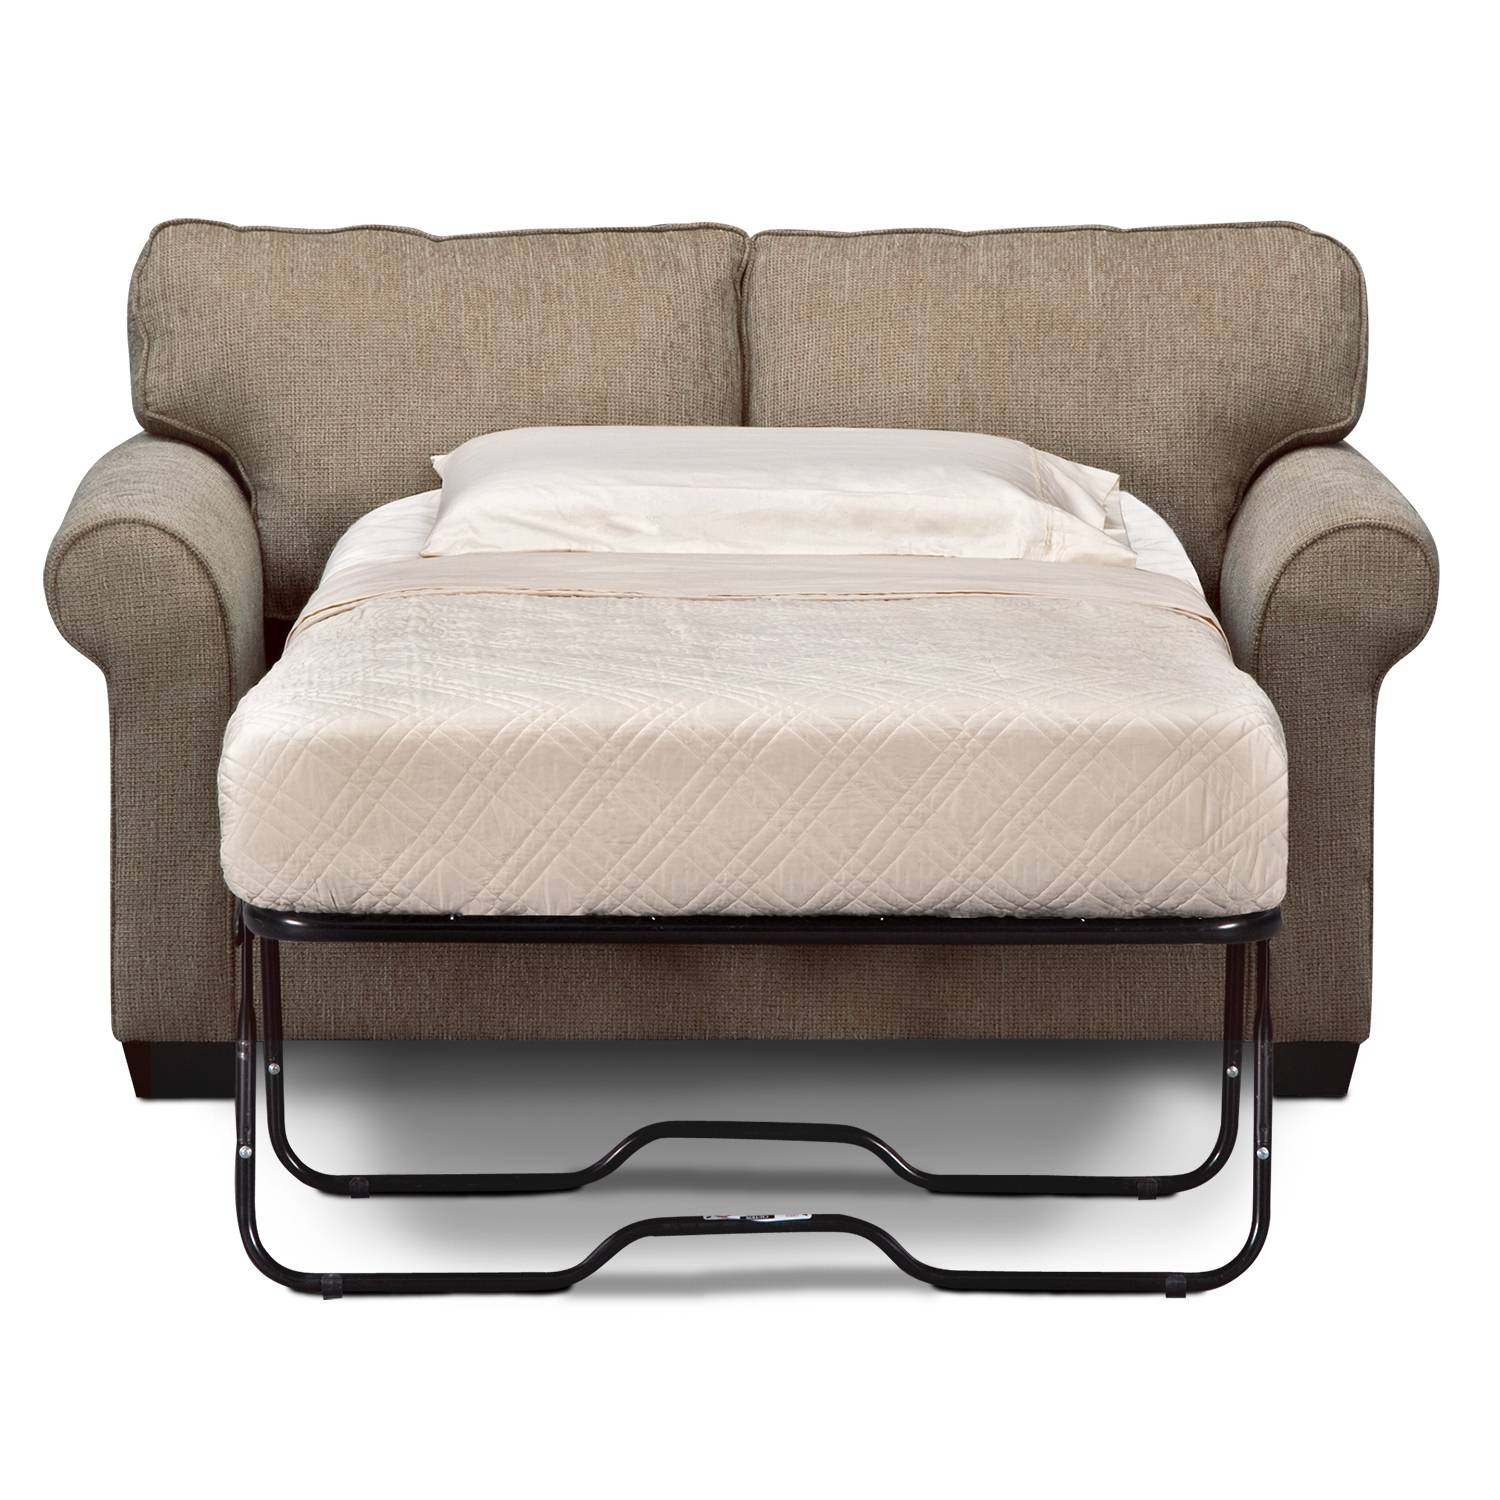 Impressive Compact Sleeper Sofa Cool Cheap Furniture Ideas With inside Cool Cheap Sofas (Image 14 of 30)